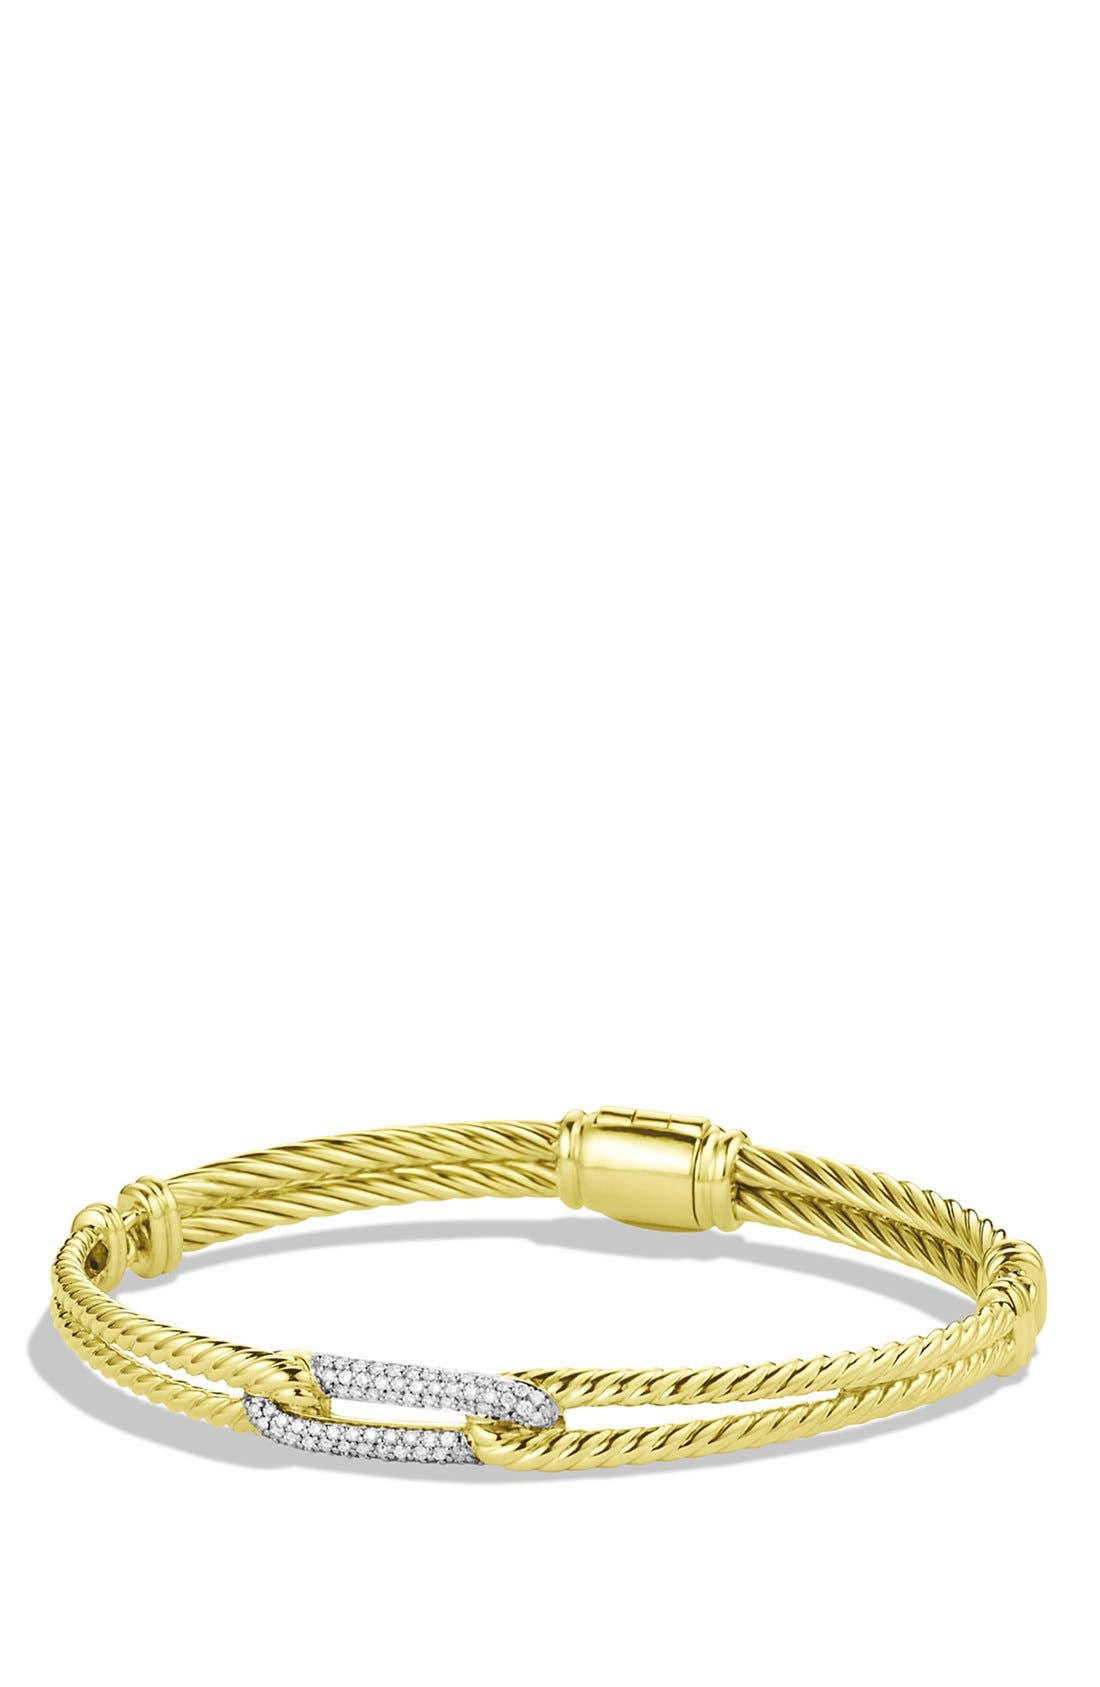 Alternate Image 1 Selected - David Yurman Petite Pavé 'Labyrinth' Mini Single Loop Bracelet with Diamonds in Gold